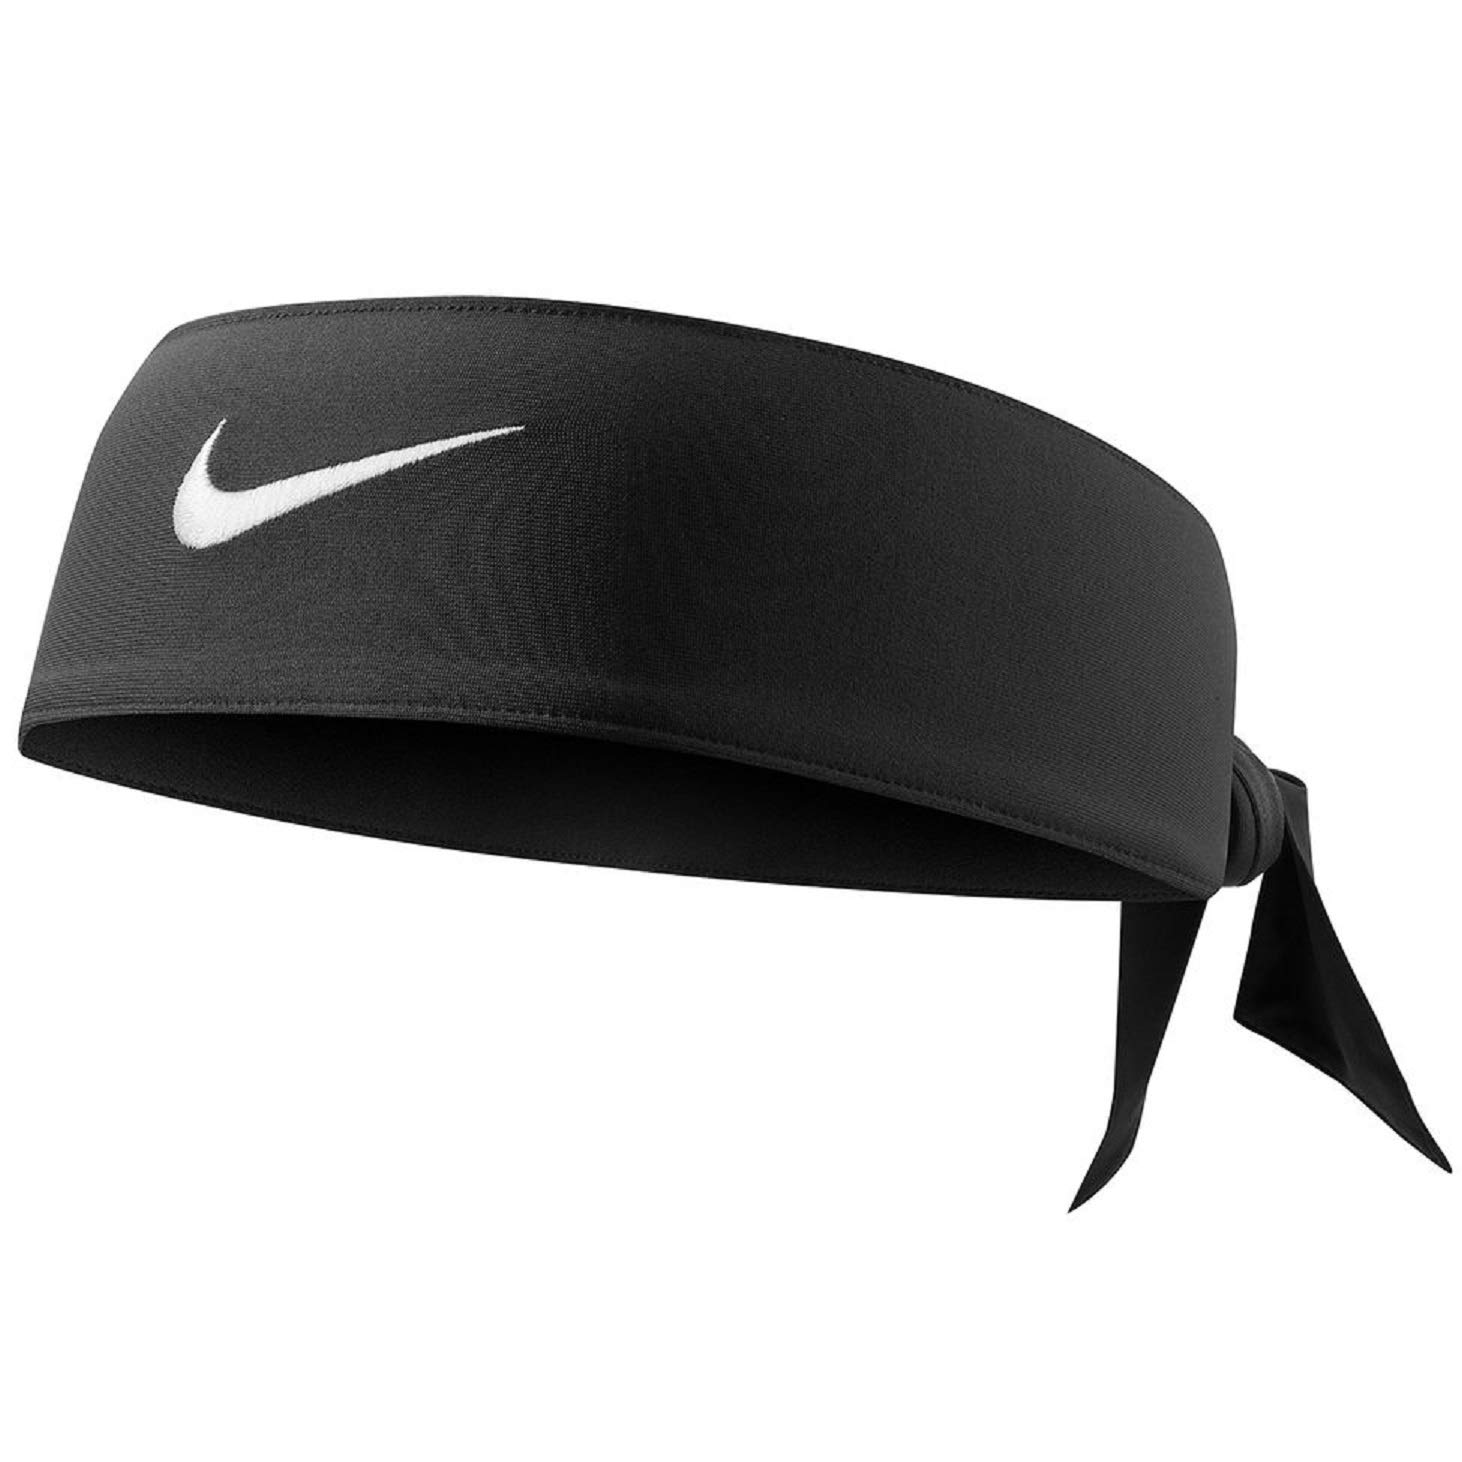 Nike Dri Fit Head Tie Black by Nike